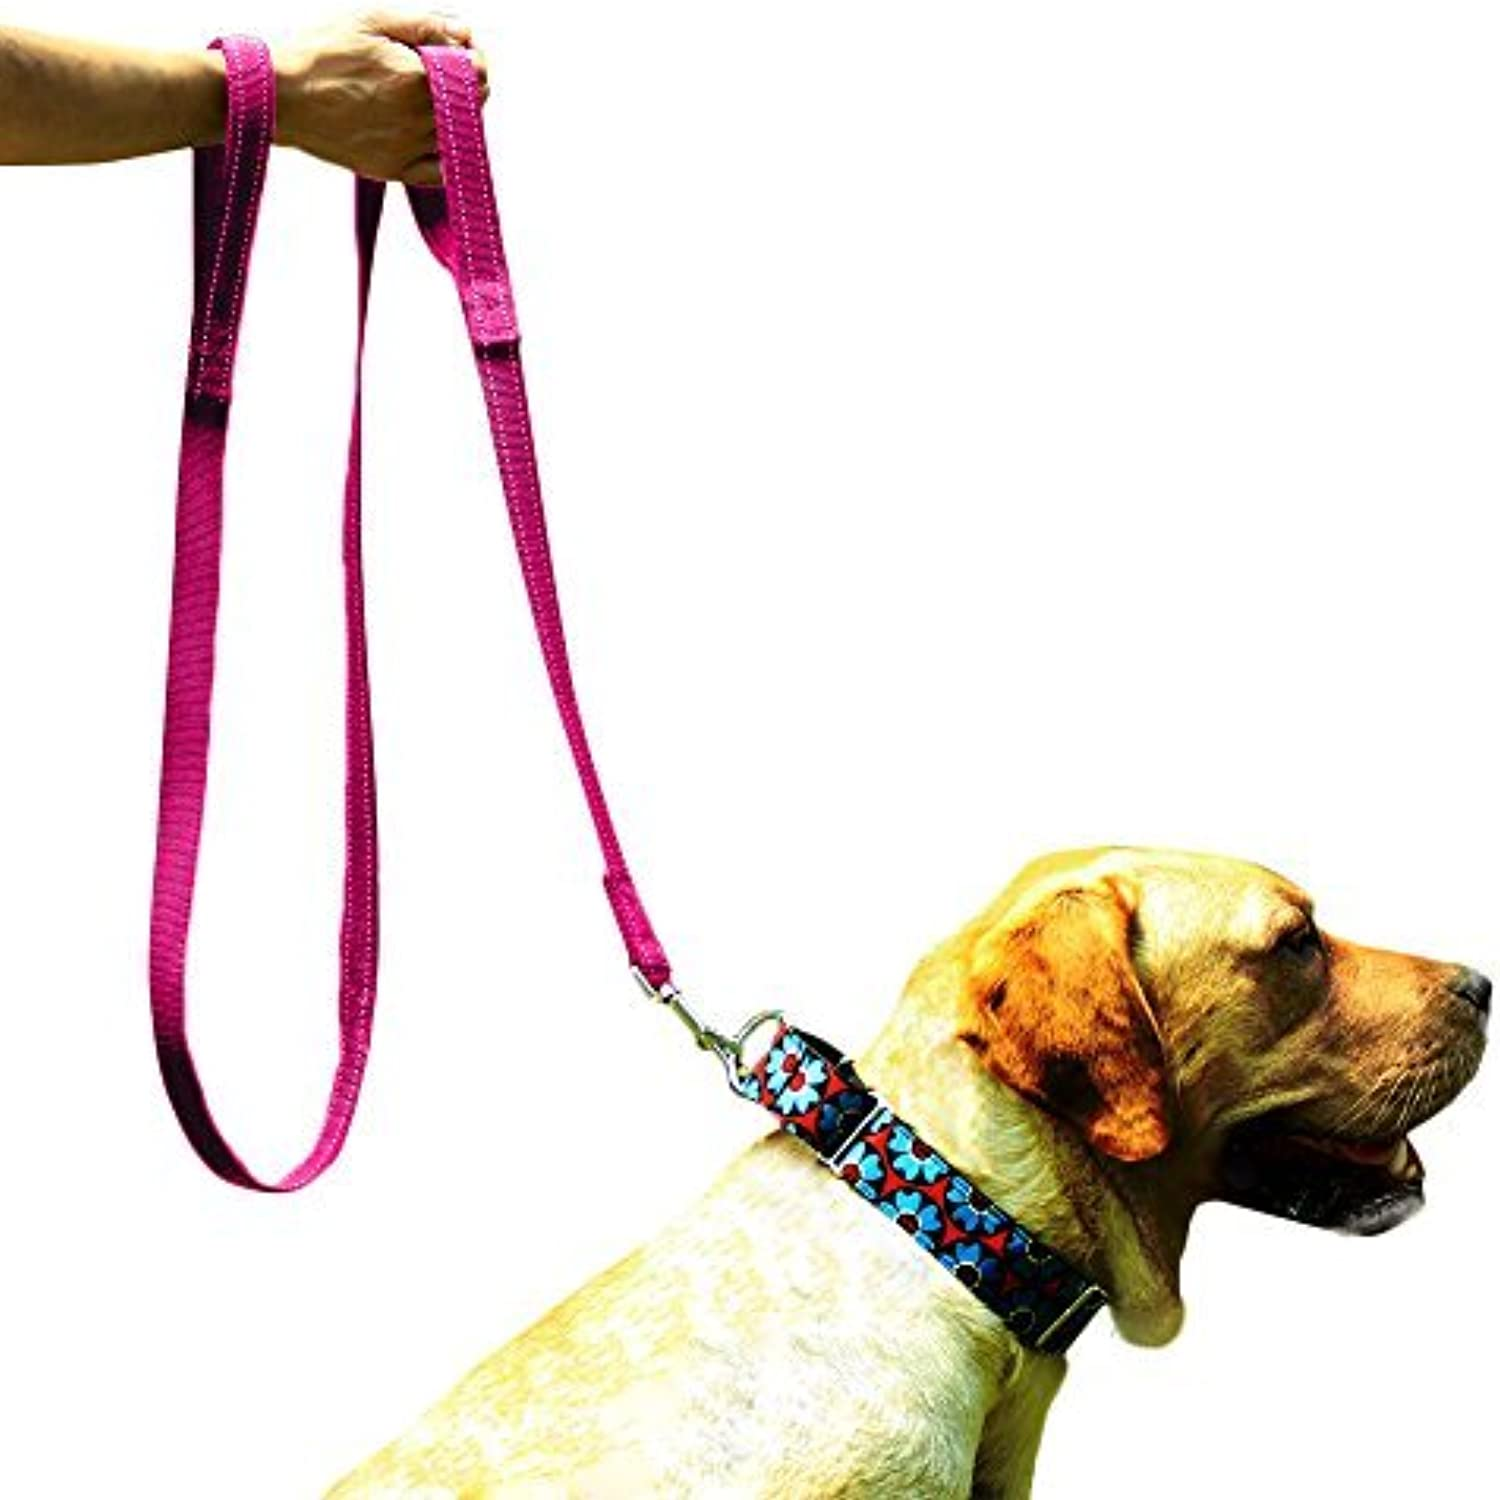 EXPAWLORER Double Handles Dog Training Leash 6 FT, Heavy Duty Padded Handle Lead for Traffic Safety Control, Perfect for Medium to Large Dog, Pink